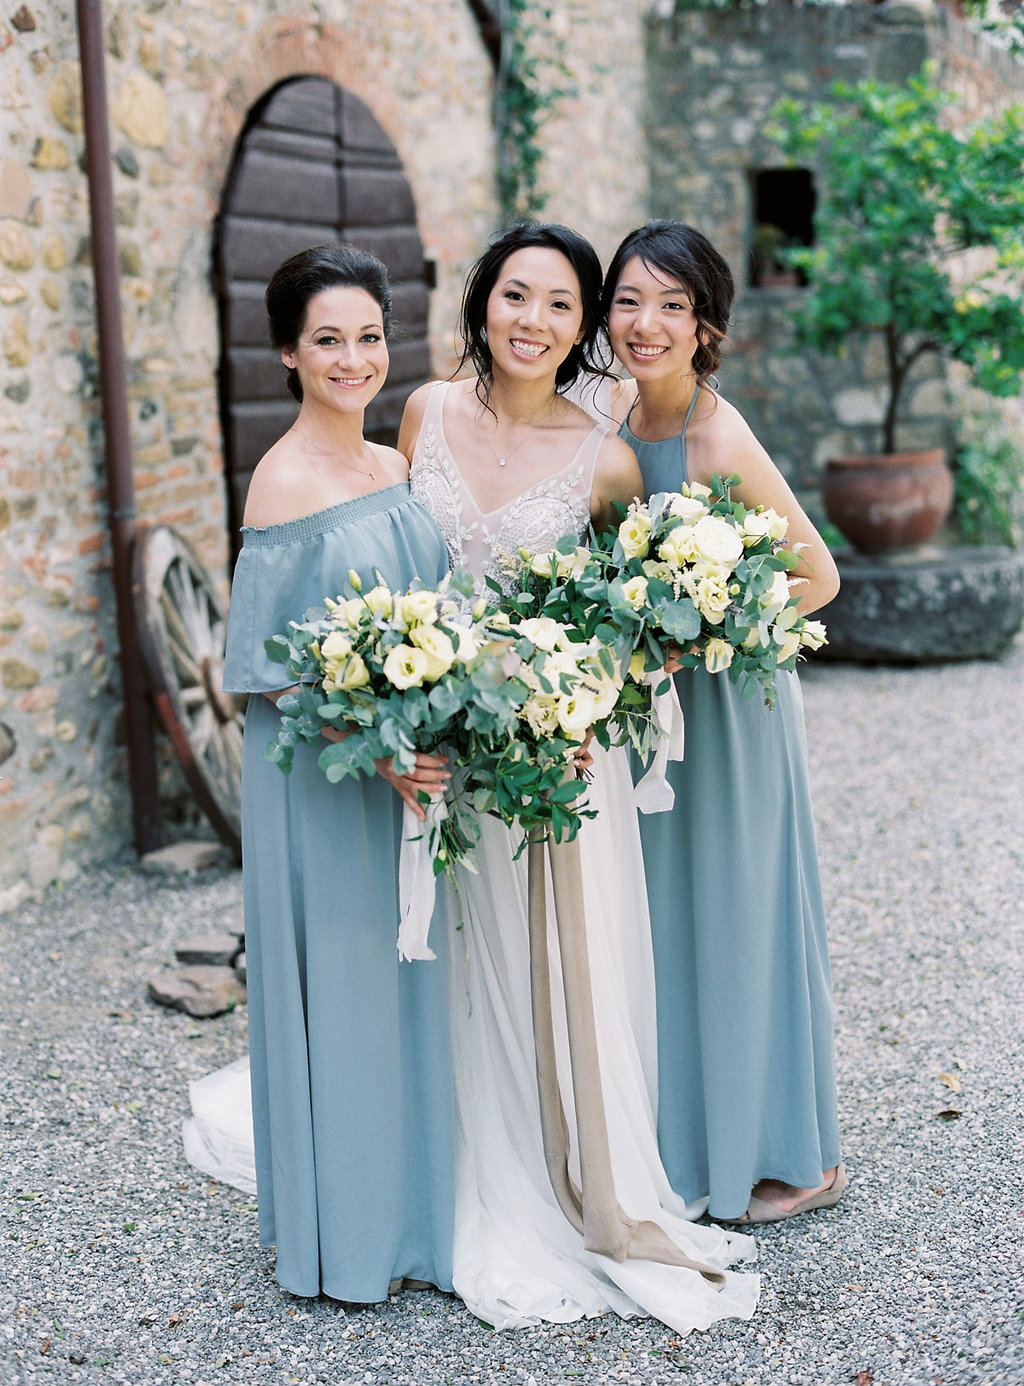 bridesmaids in dusty blue gowns - photo by Katie Grant Photography http://ruffledblog.com/classically-beautiful-intimate-wedding-in-tuscany